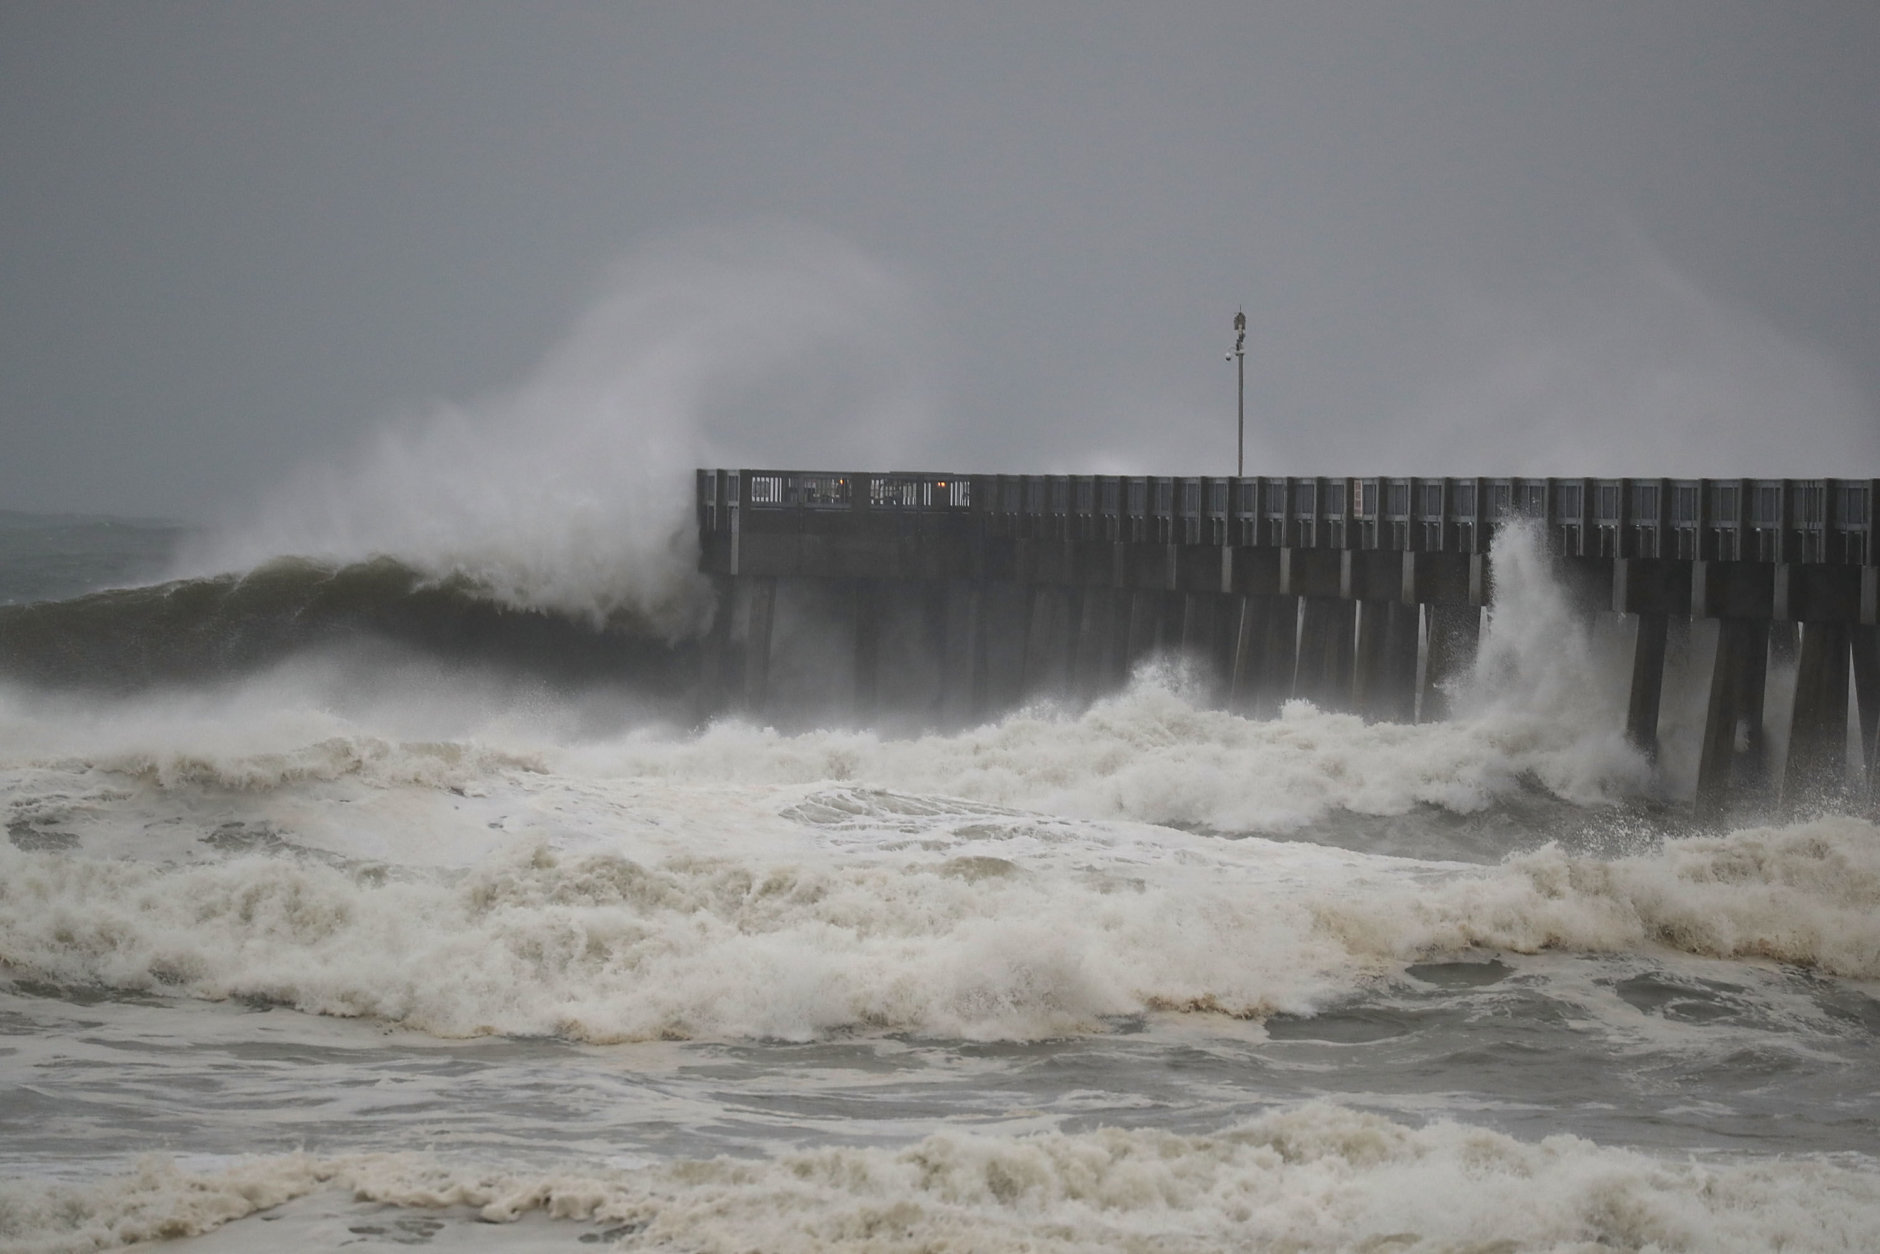 PANAMA CITY BEACH, FL - OCTOBER 10:  Waves crash along a pier as the outerbands of  hurricane Michael arrive on October 10, 2018 in Panama City Beach, Florida. The hurricane is forecast to hit the Florida Panhandle at a possible category 4 storm.  (Photo by Joe Raedle/Getty Images)